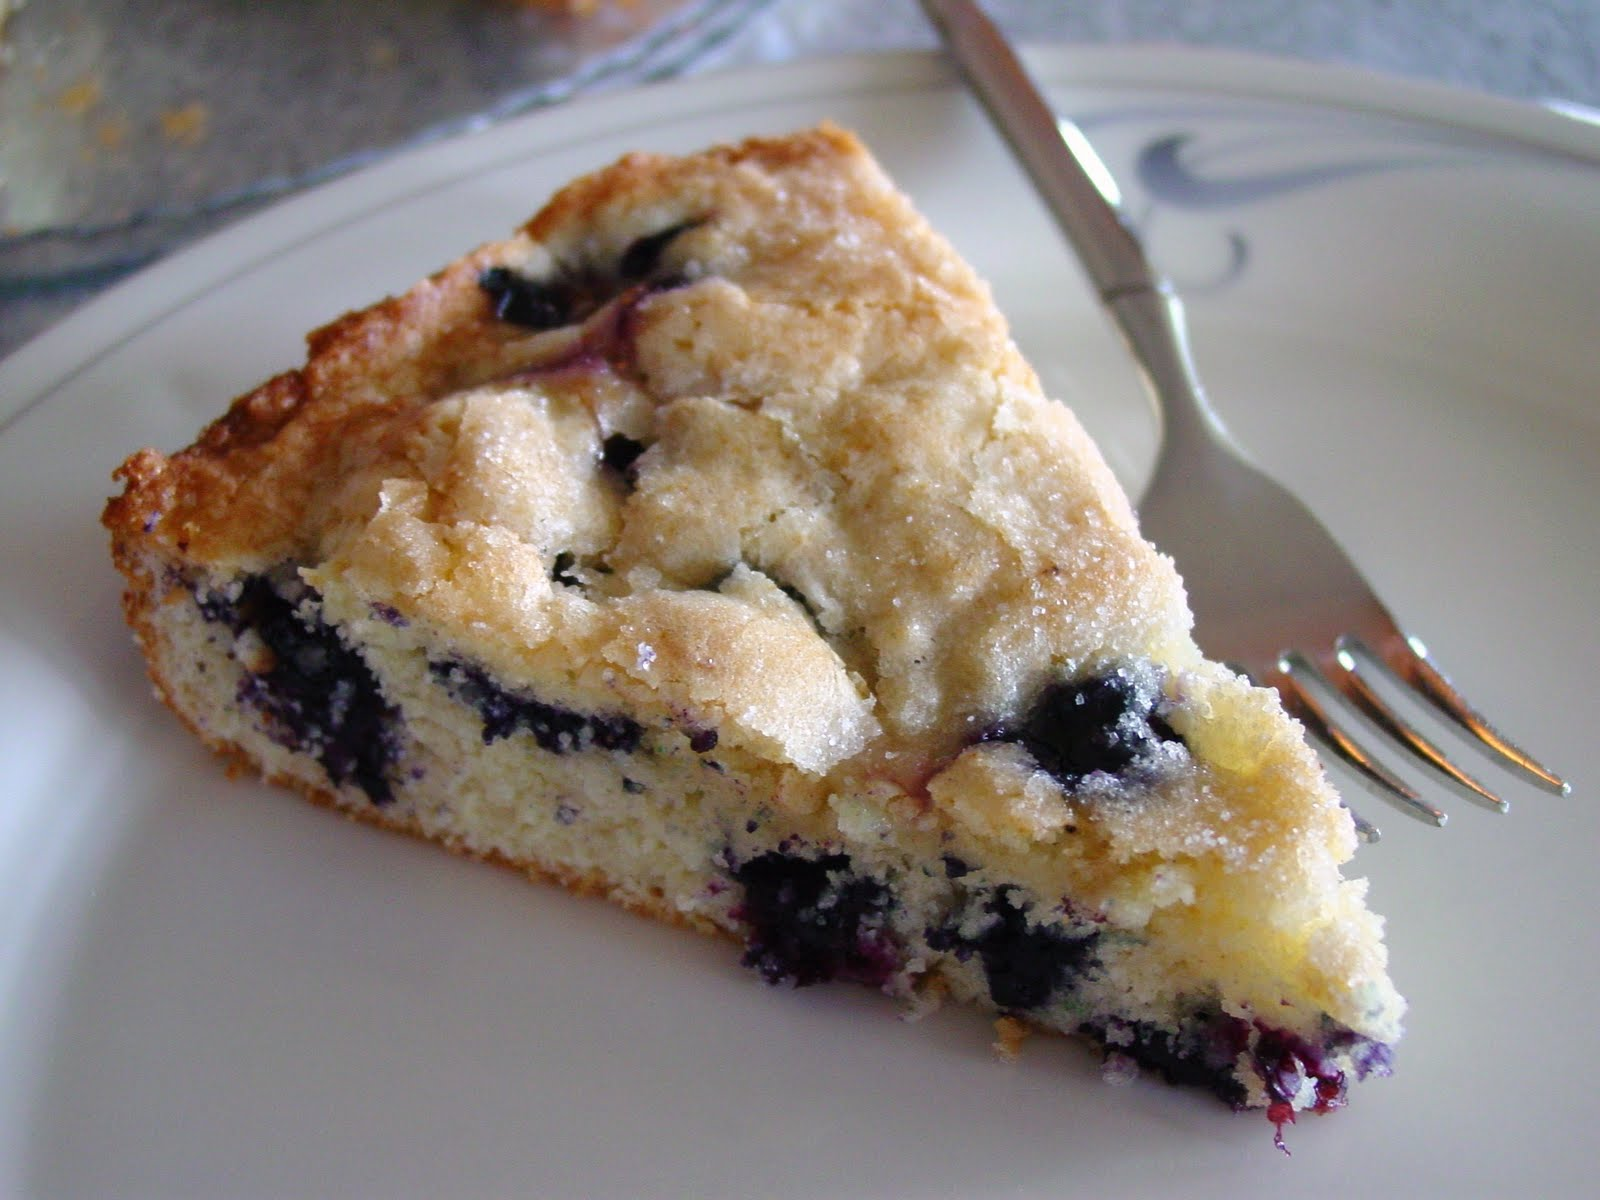 Lick The Bowl Good: Happy Father's Day and Blueberry Cake